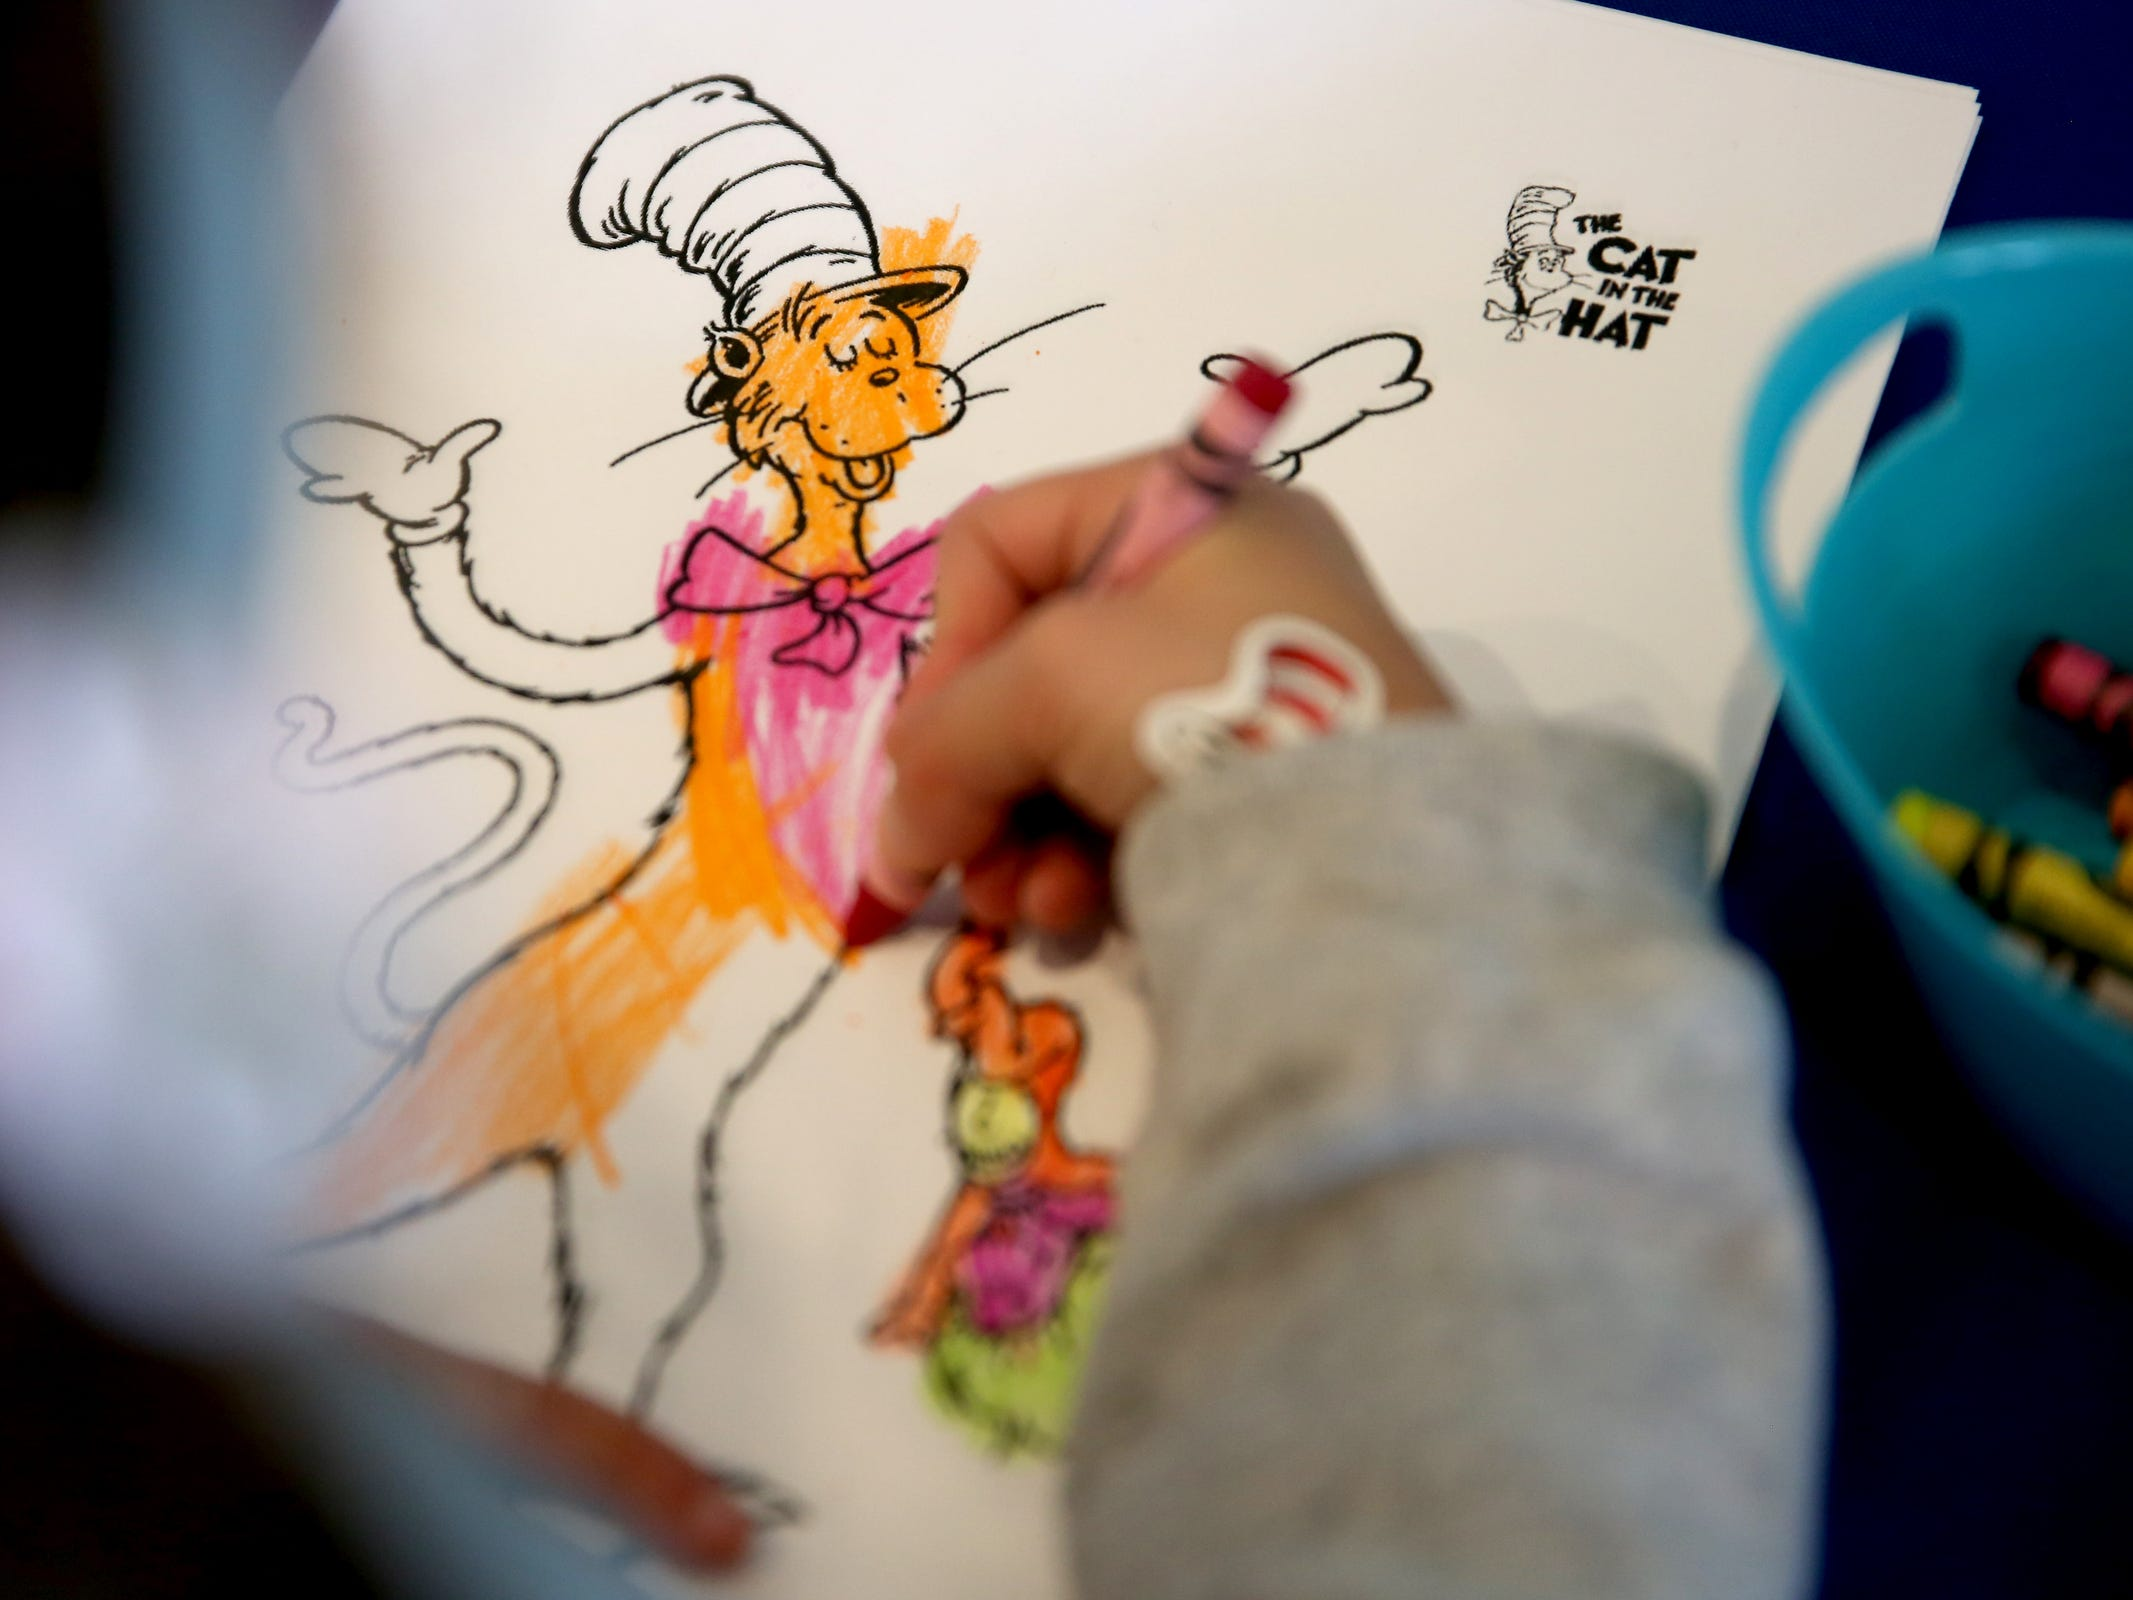 Clara Prickett, 4, of Salem, colors as part of a National Read Across America Day activity in honor of Dr. Seuss' birthday at Gilbert House Children's Museum in Salem  on Friday, March 1, 2019.